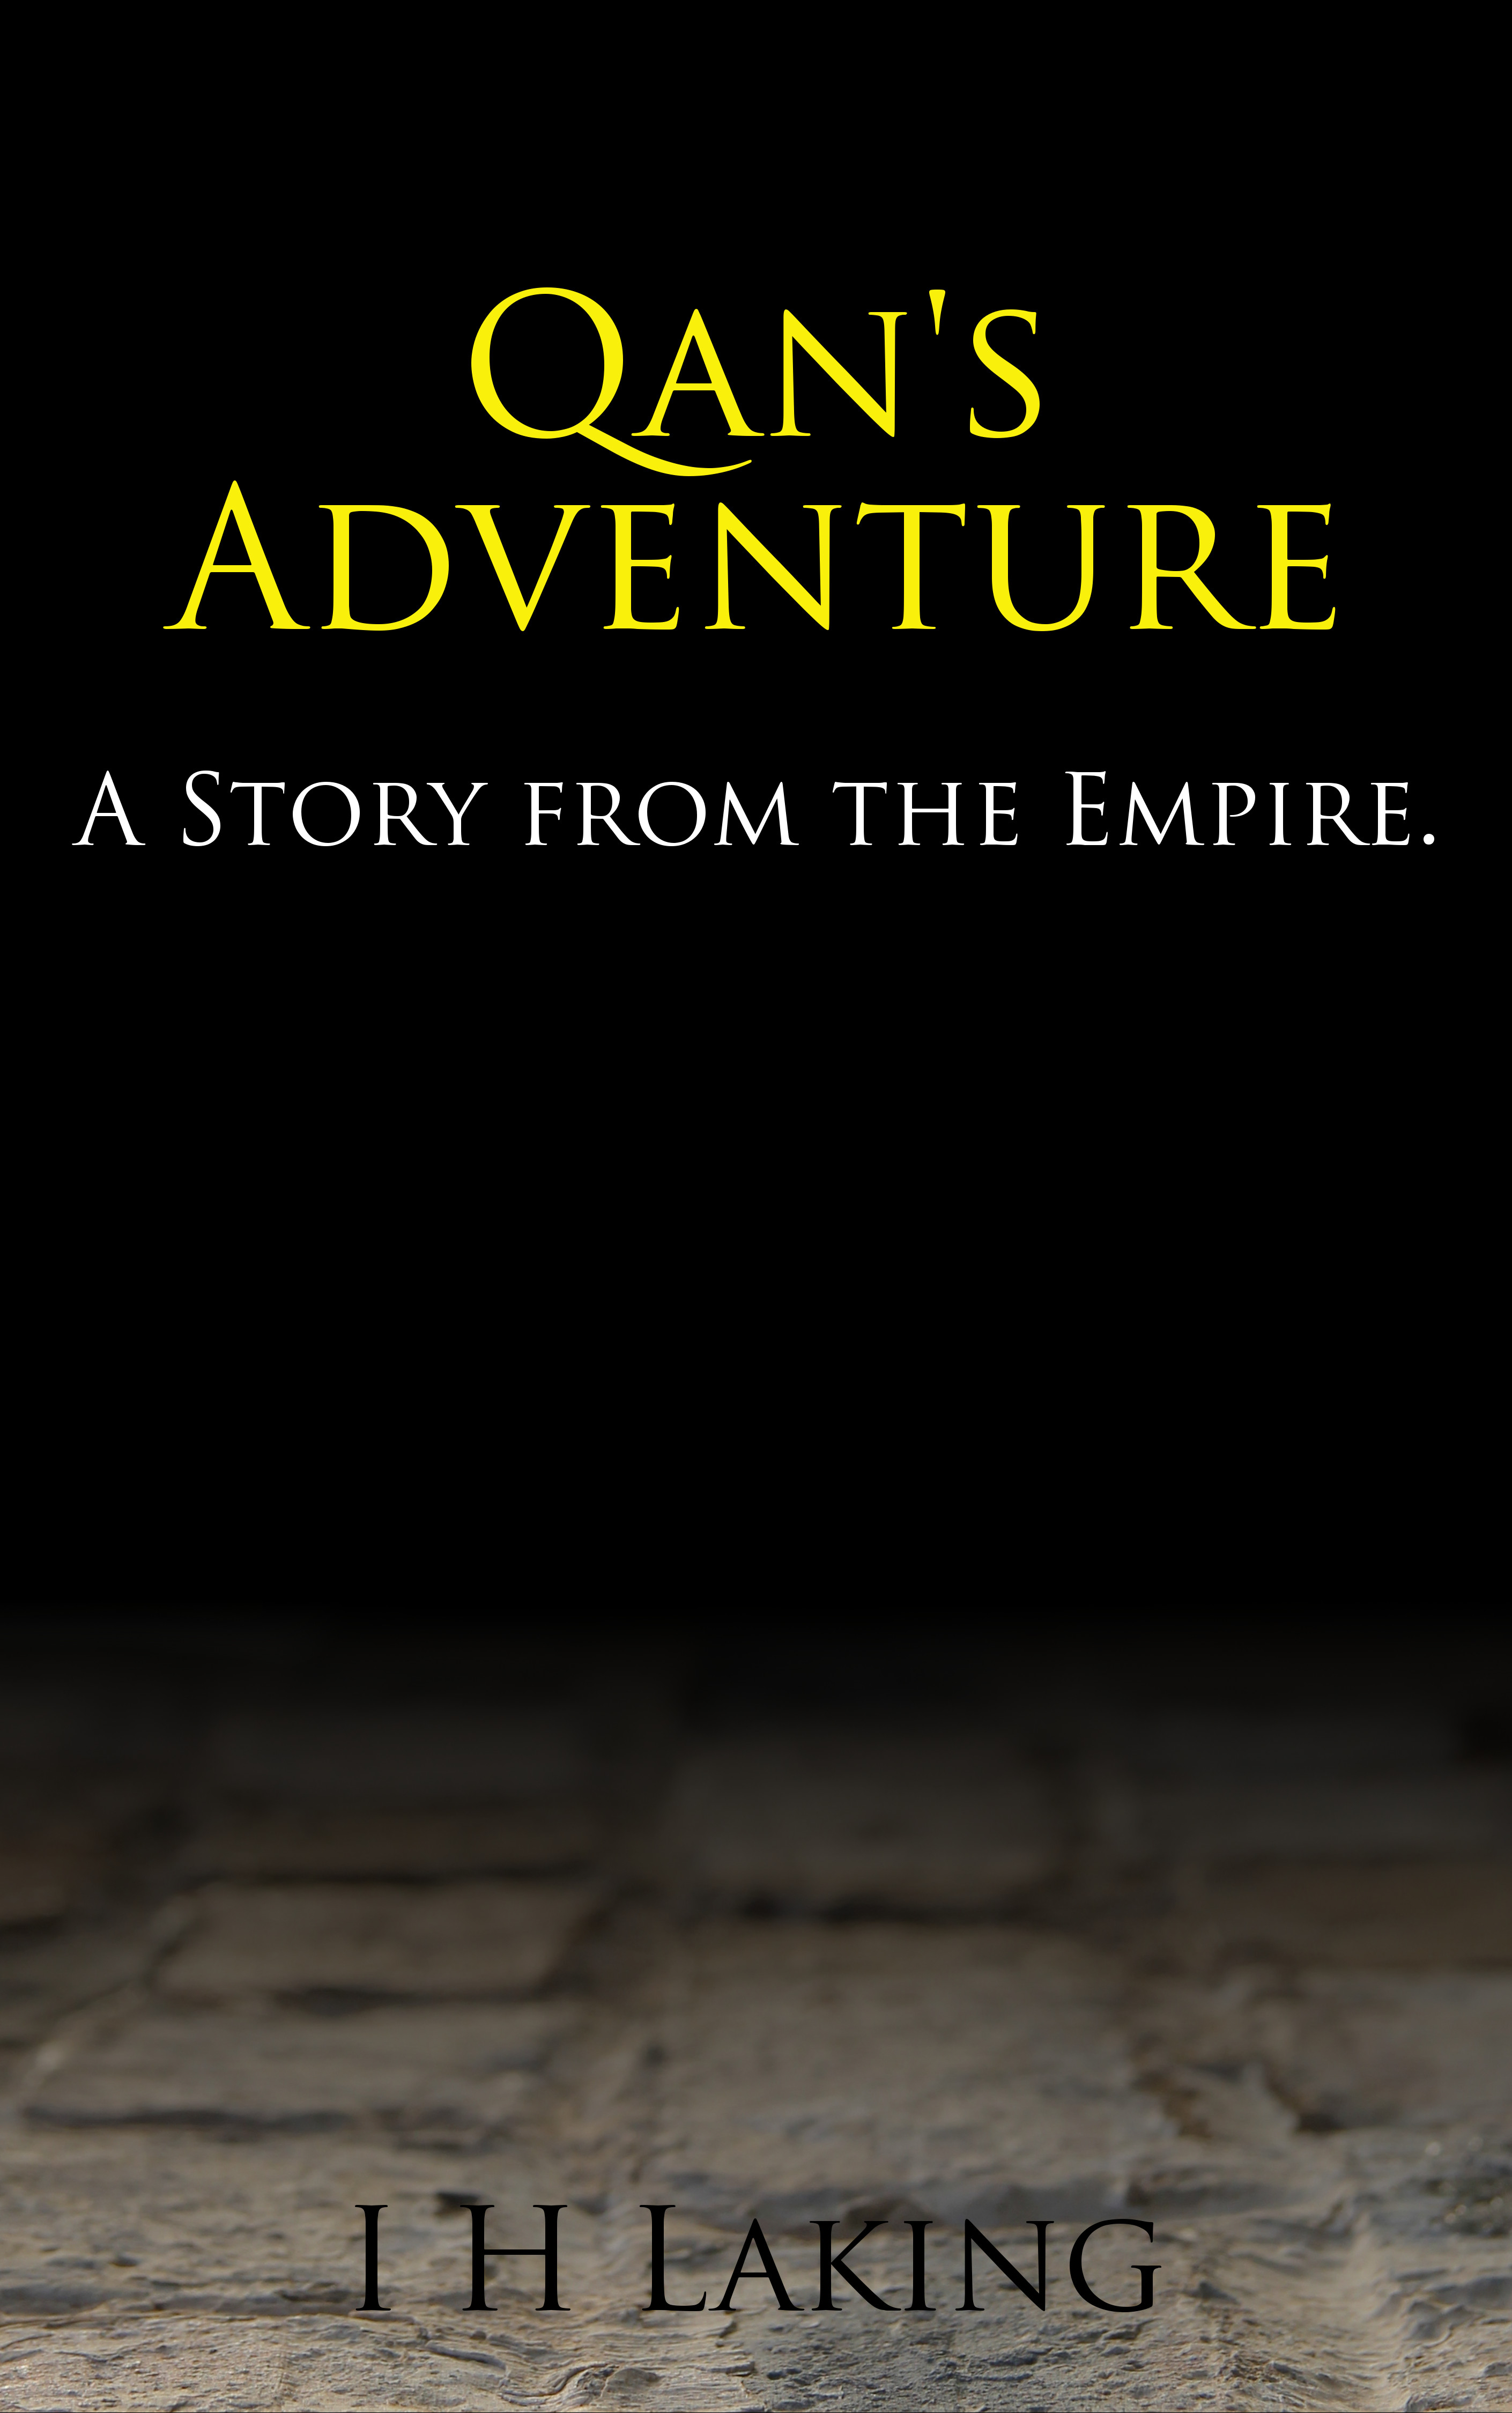 Qan's Adventure: A Story from the Empire.